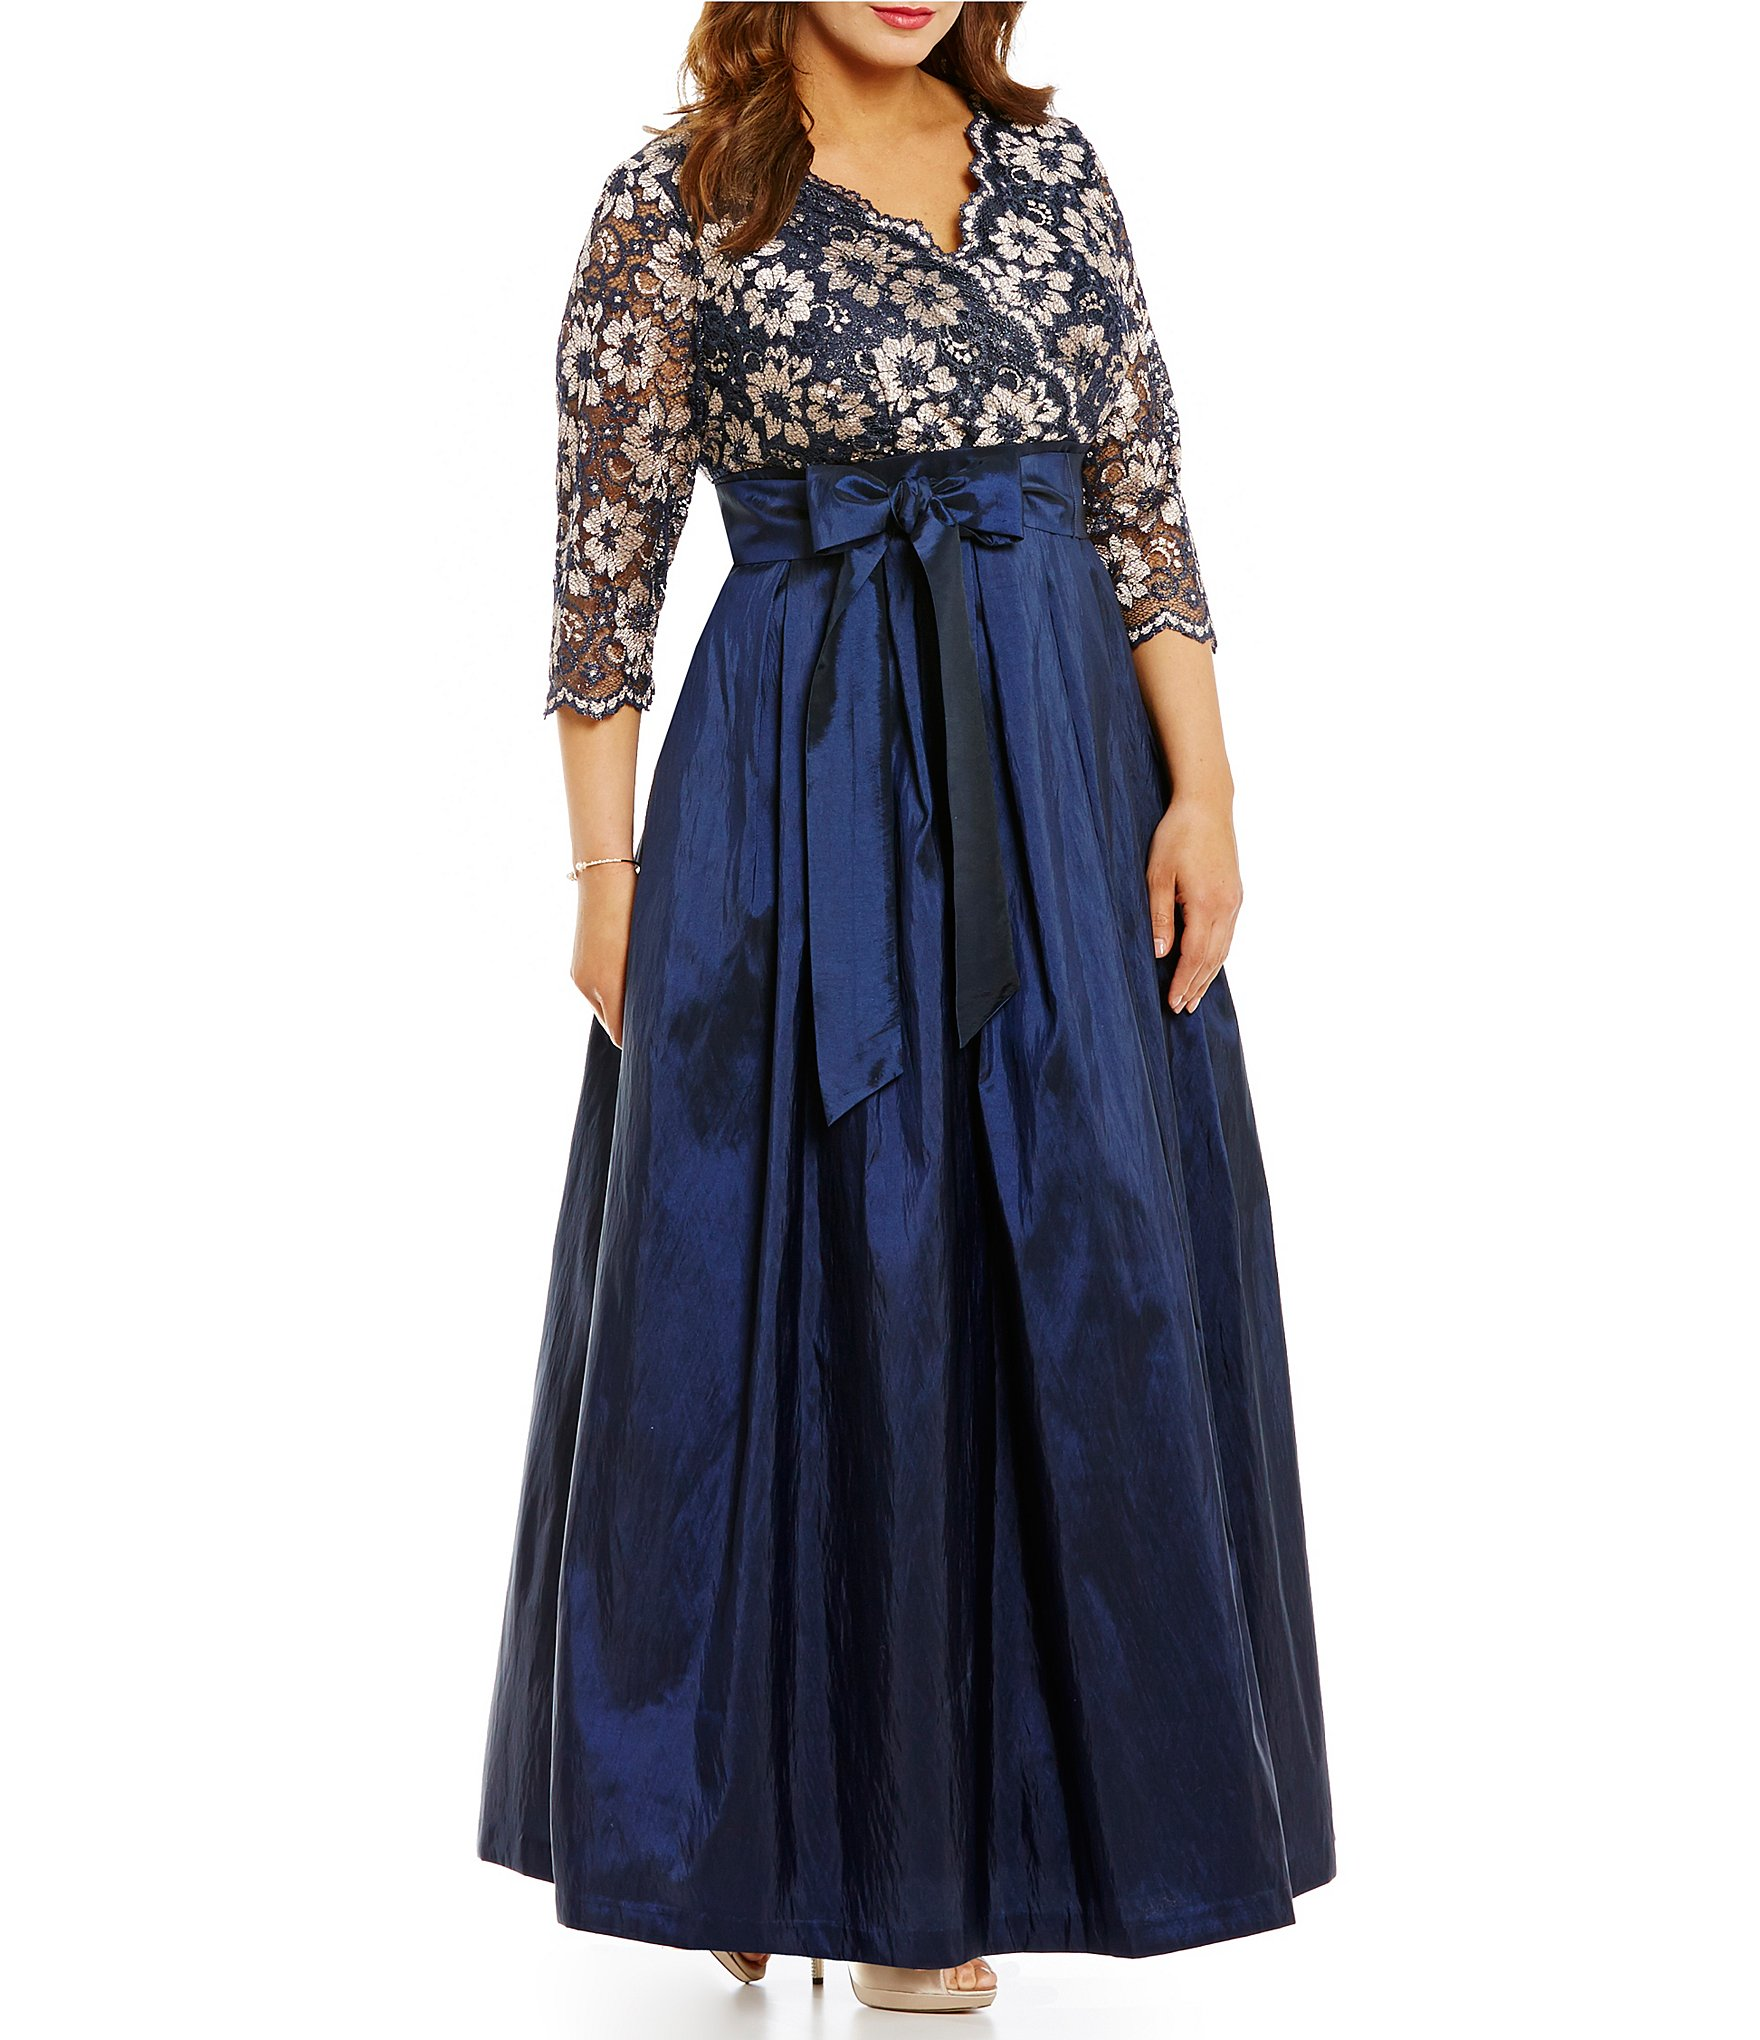 bebf6120dd30 Jessica Howard Plus V-Neck 3/4 Sleeve Lace A-Line Ballgown | Dillard's